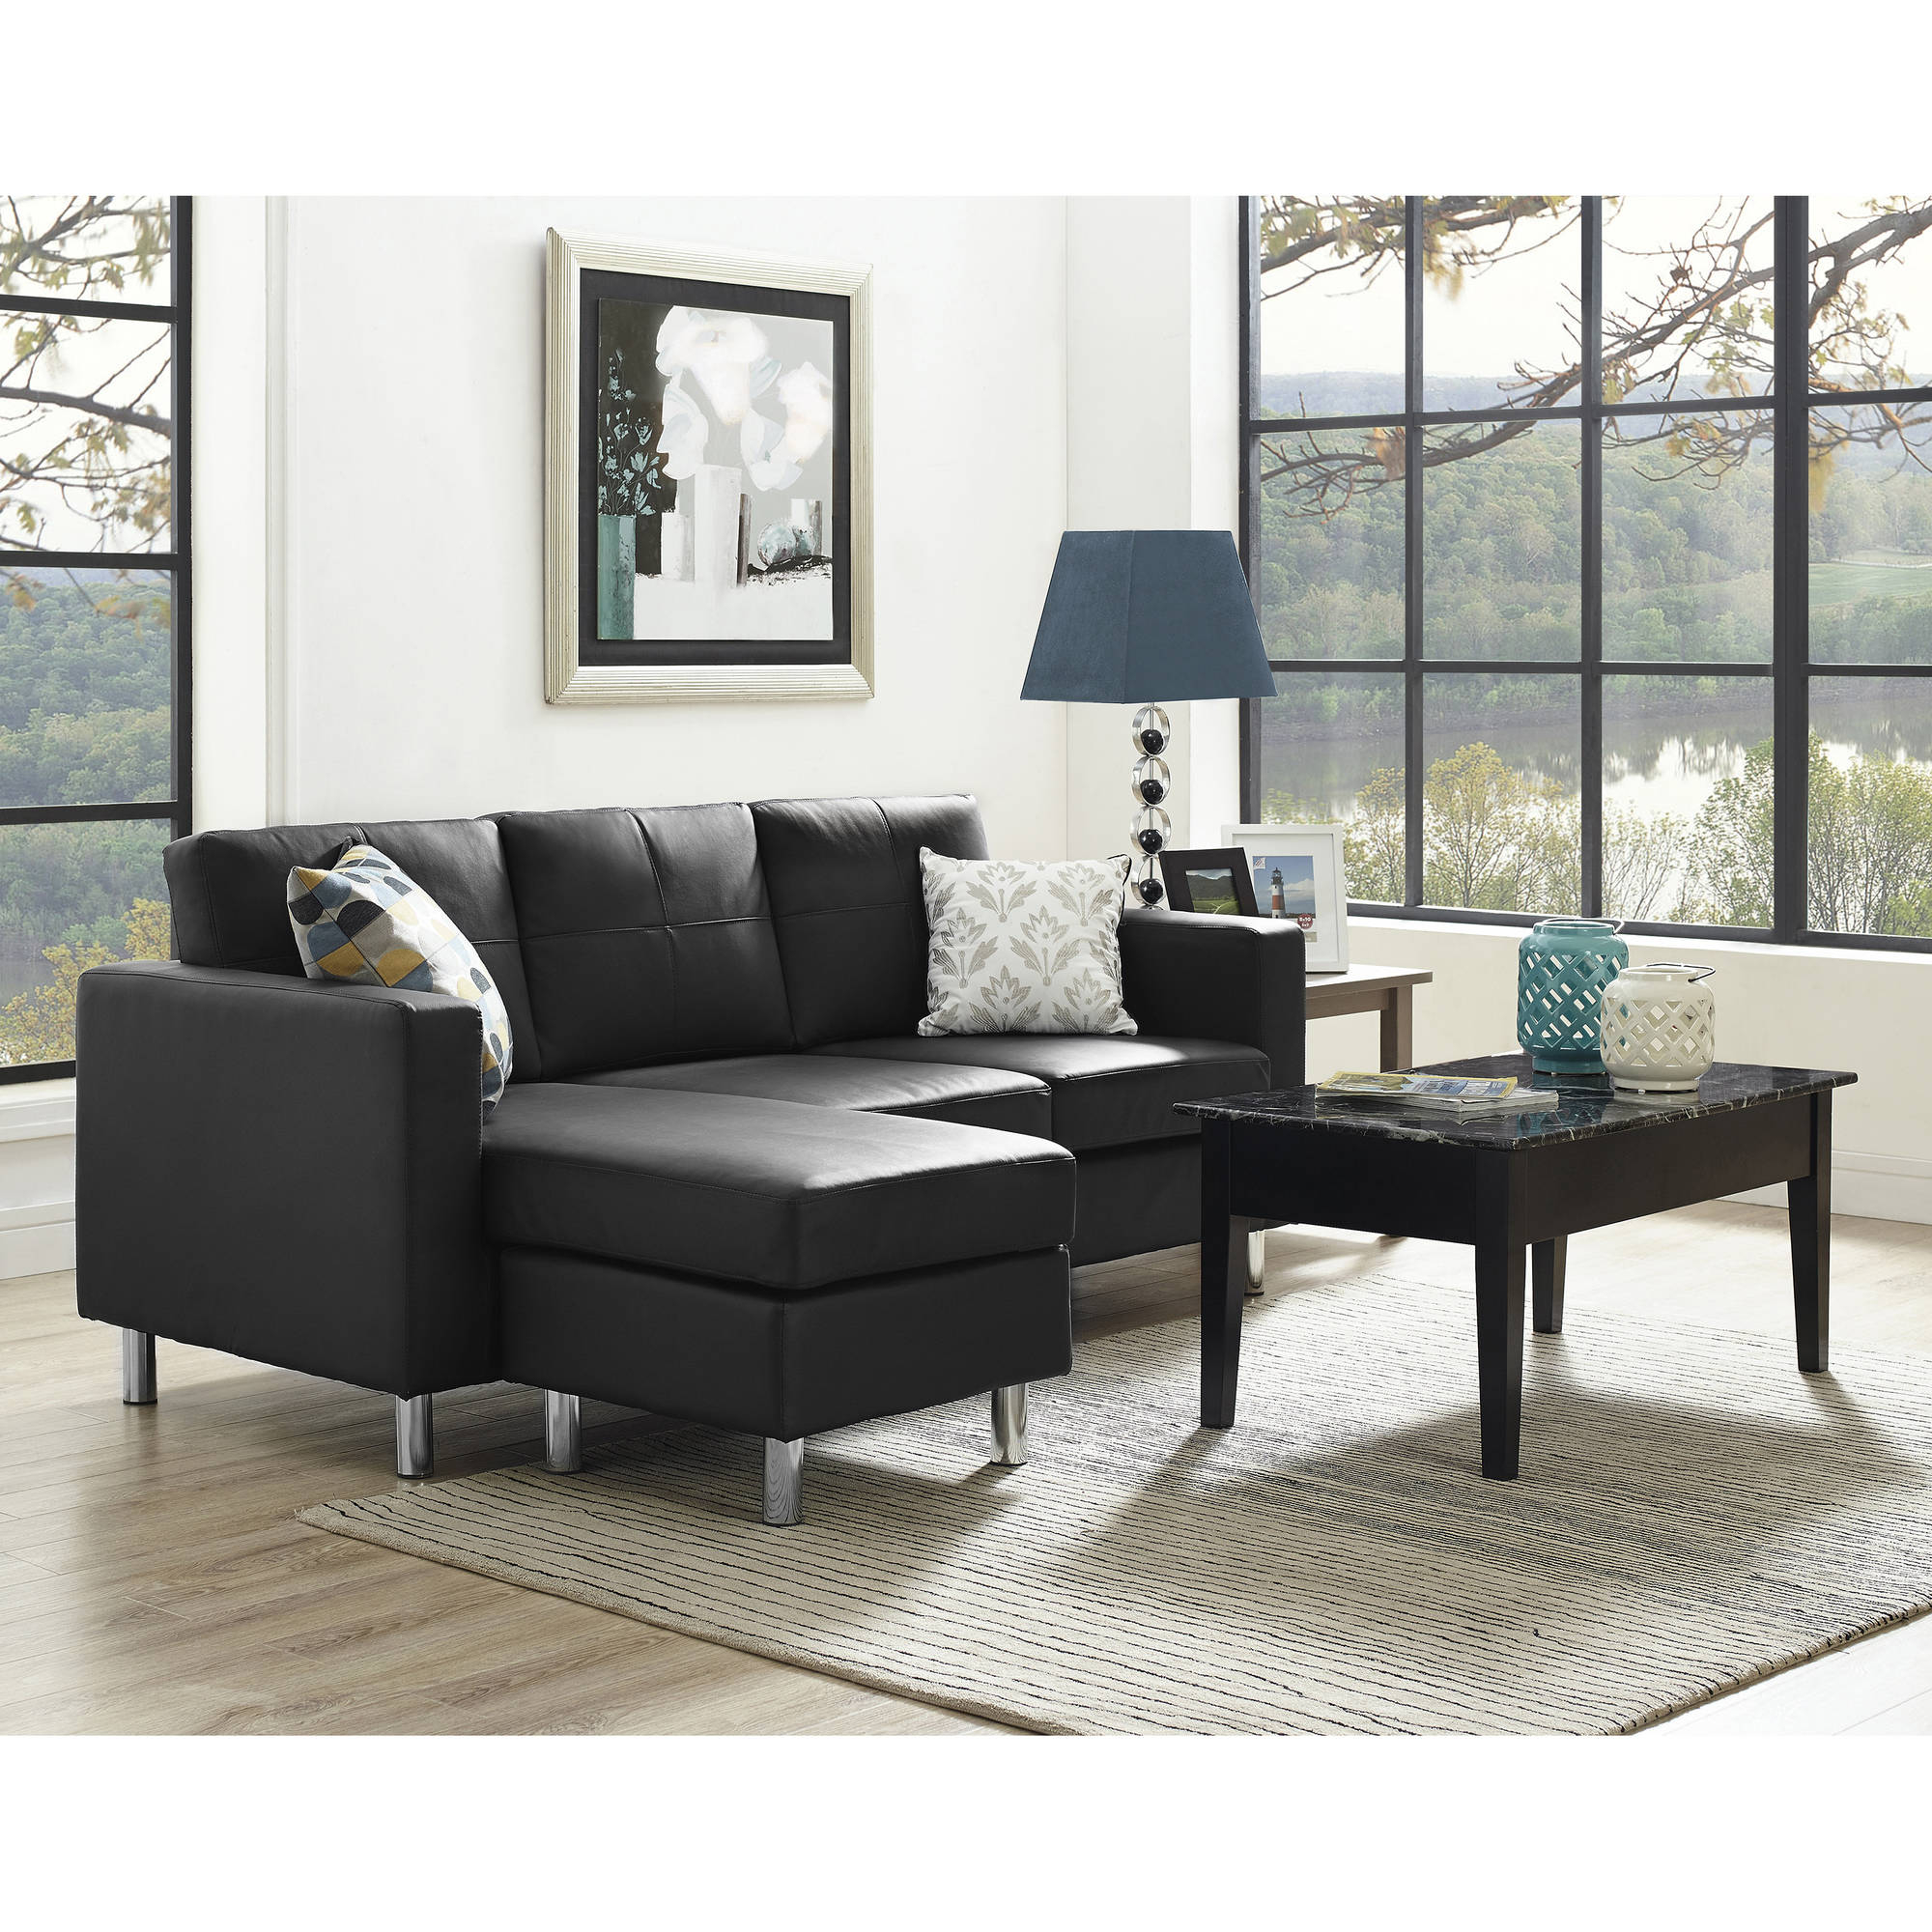 Small Spaces Living Room Value Bundle Walmart within 14 Genius Initiatives of How to Build Sala Set For Small Living Room